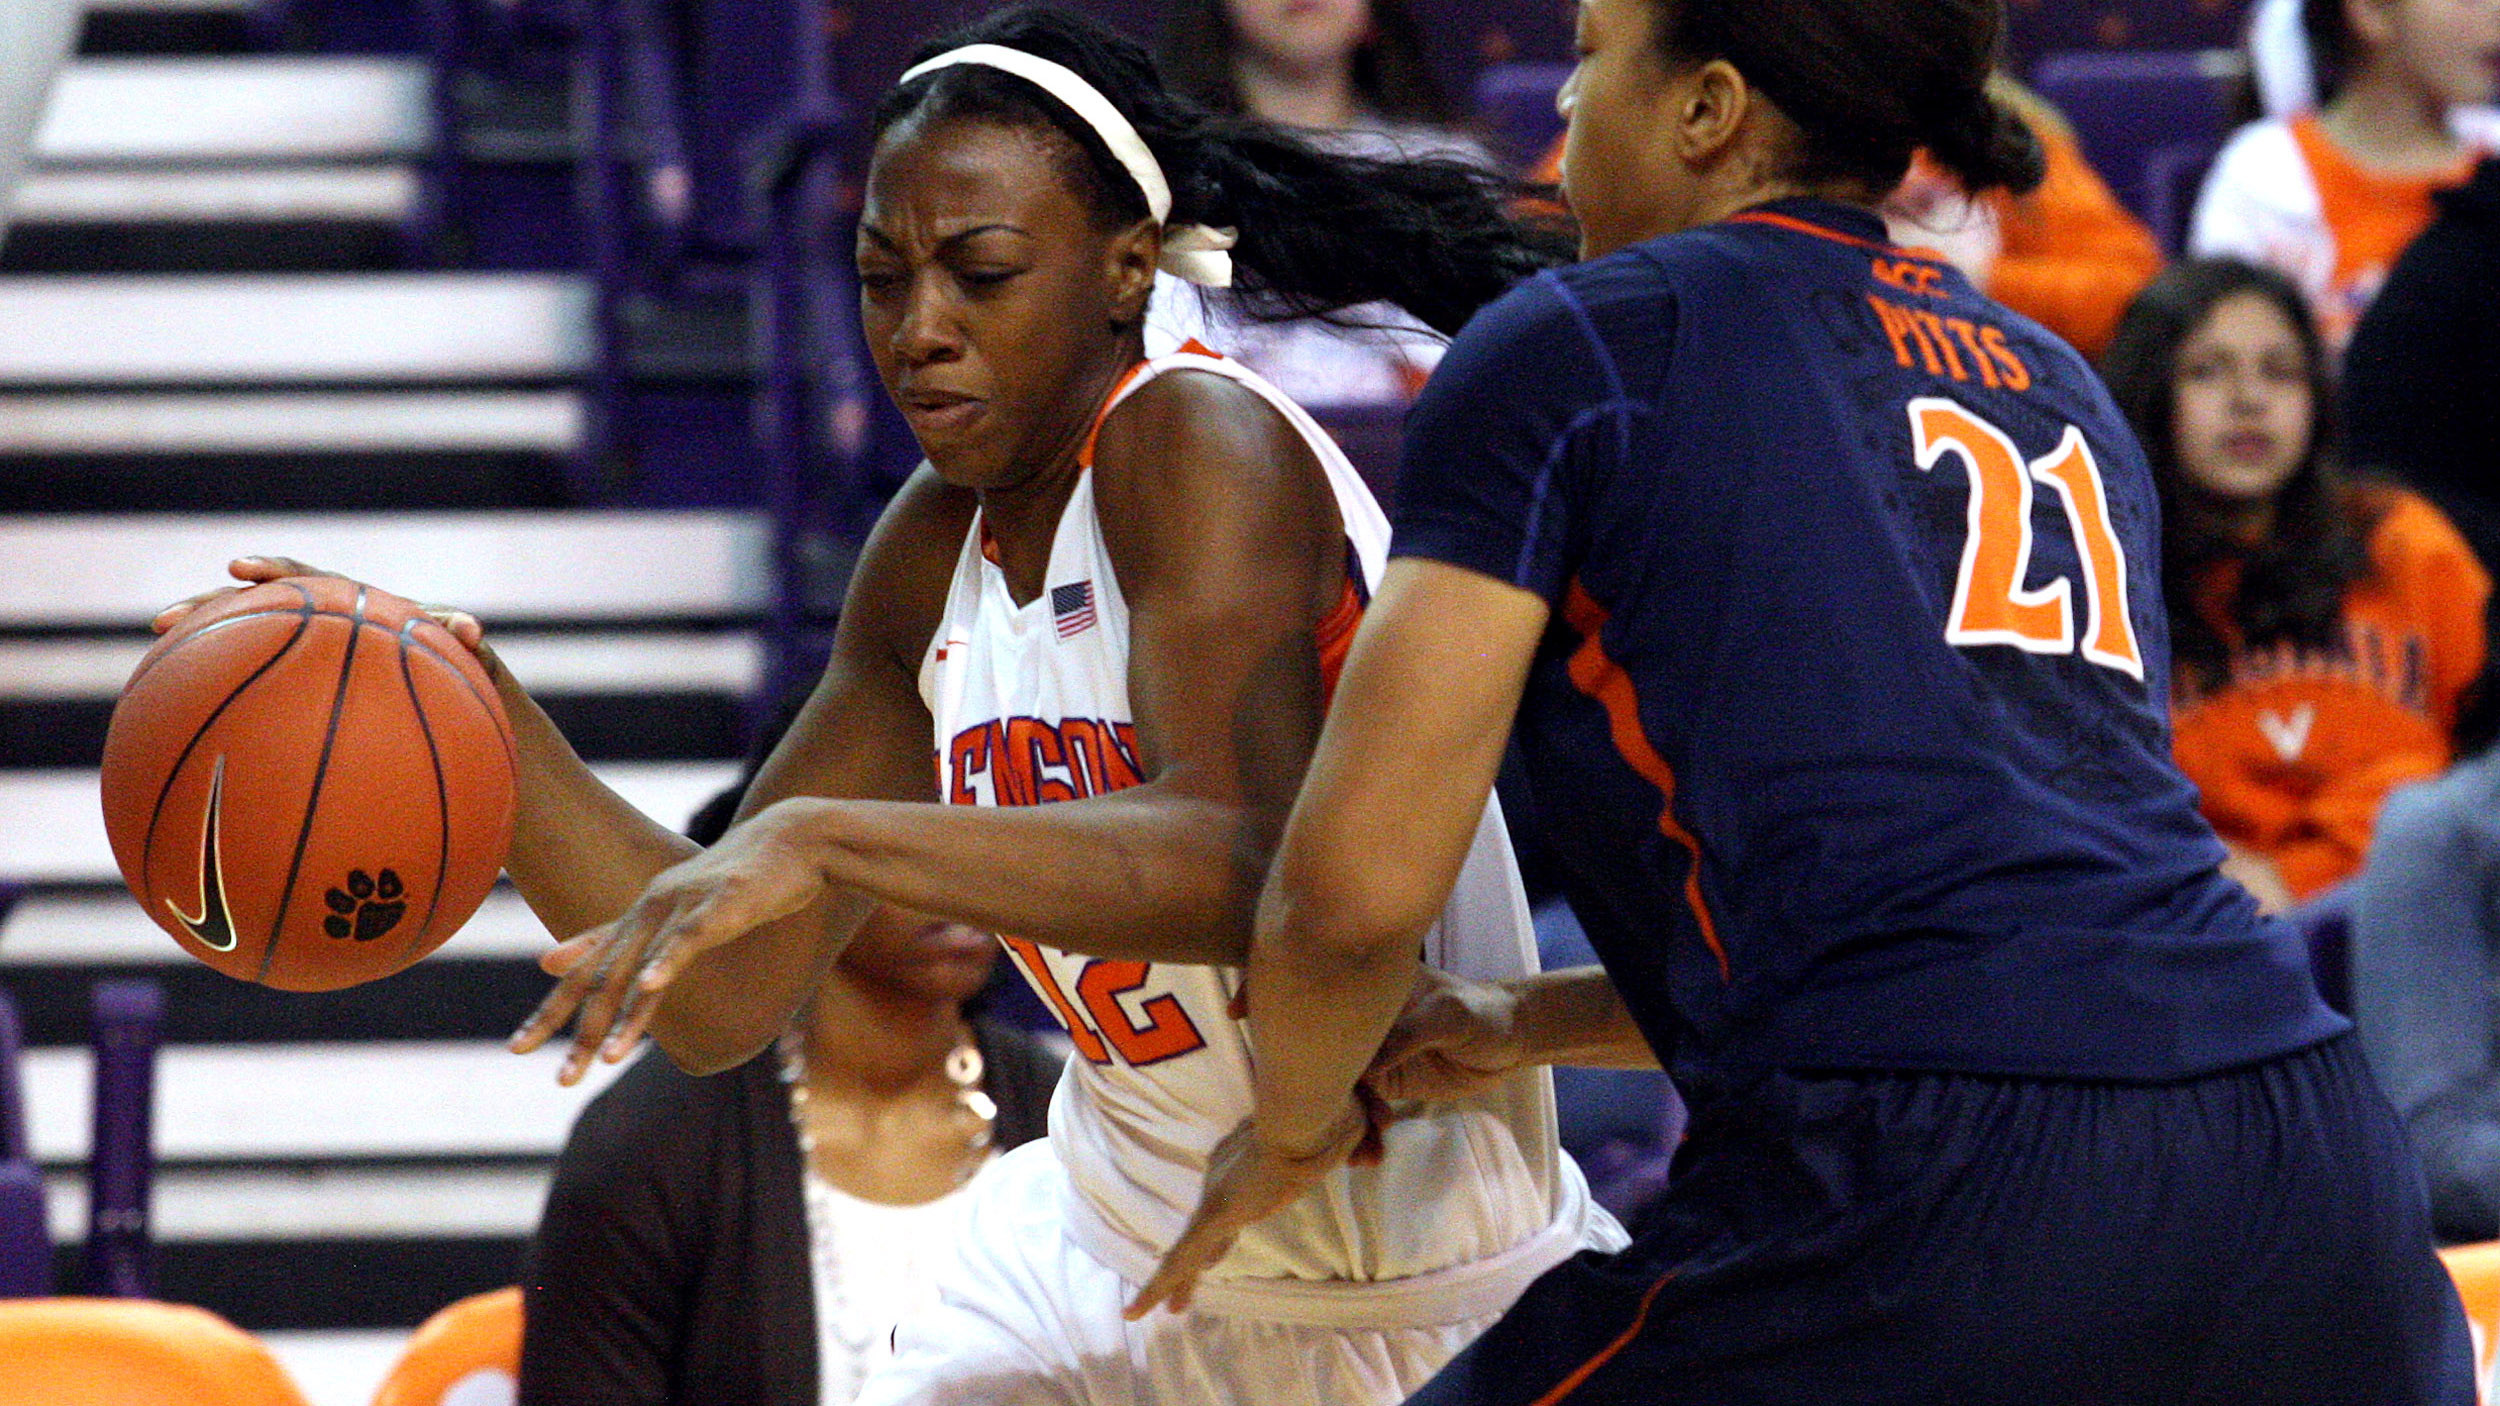 Lady Tigers Beat Boston College in Chestnut Hill